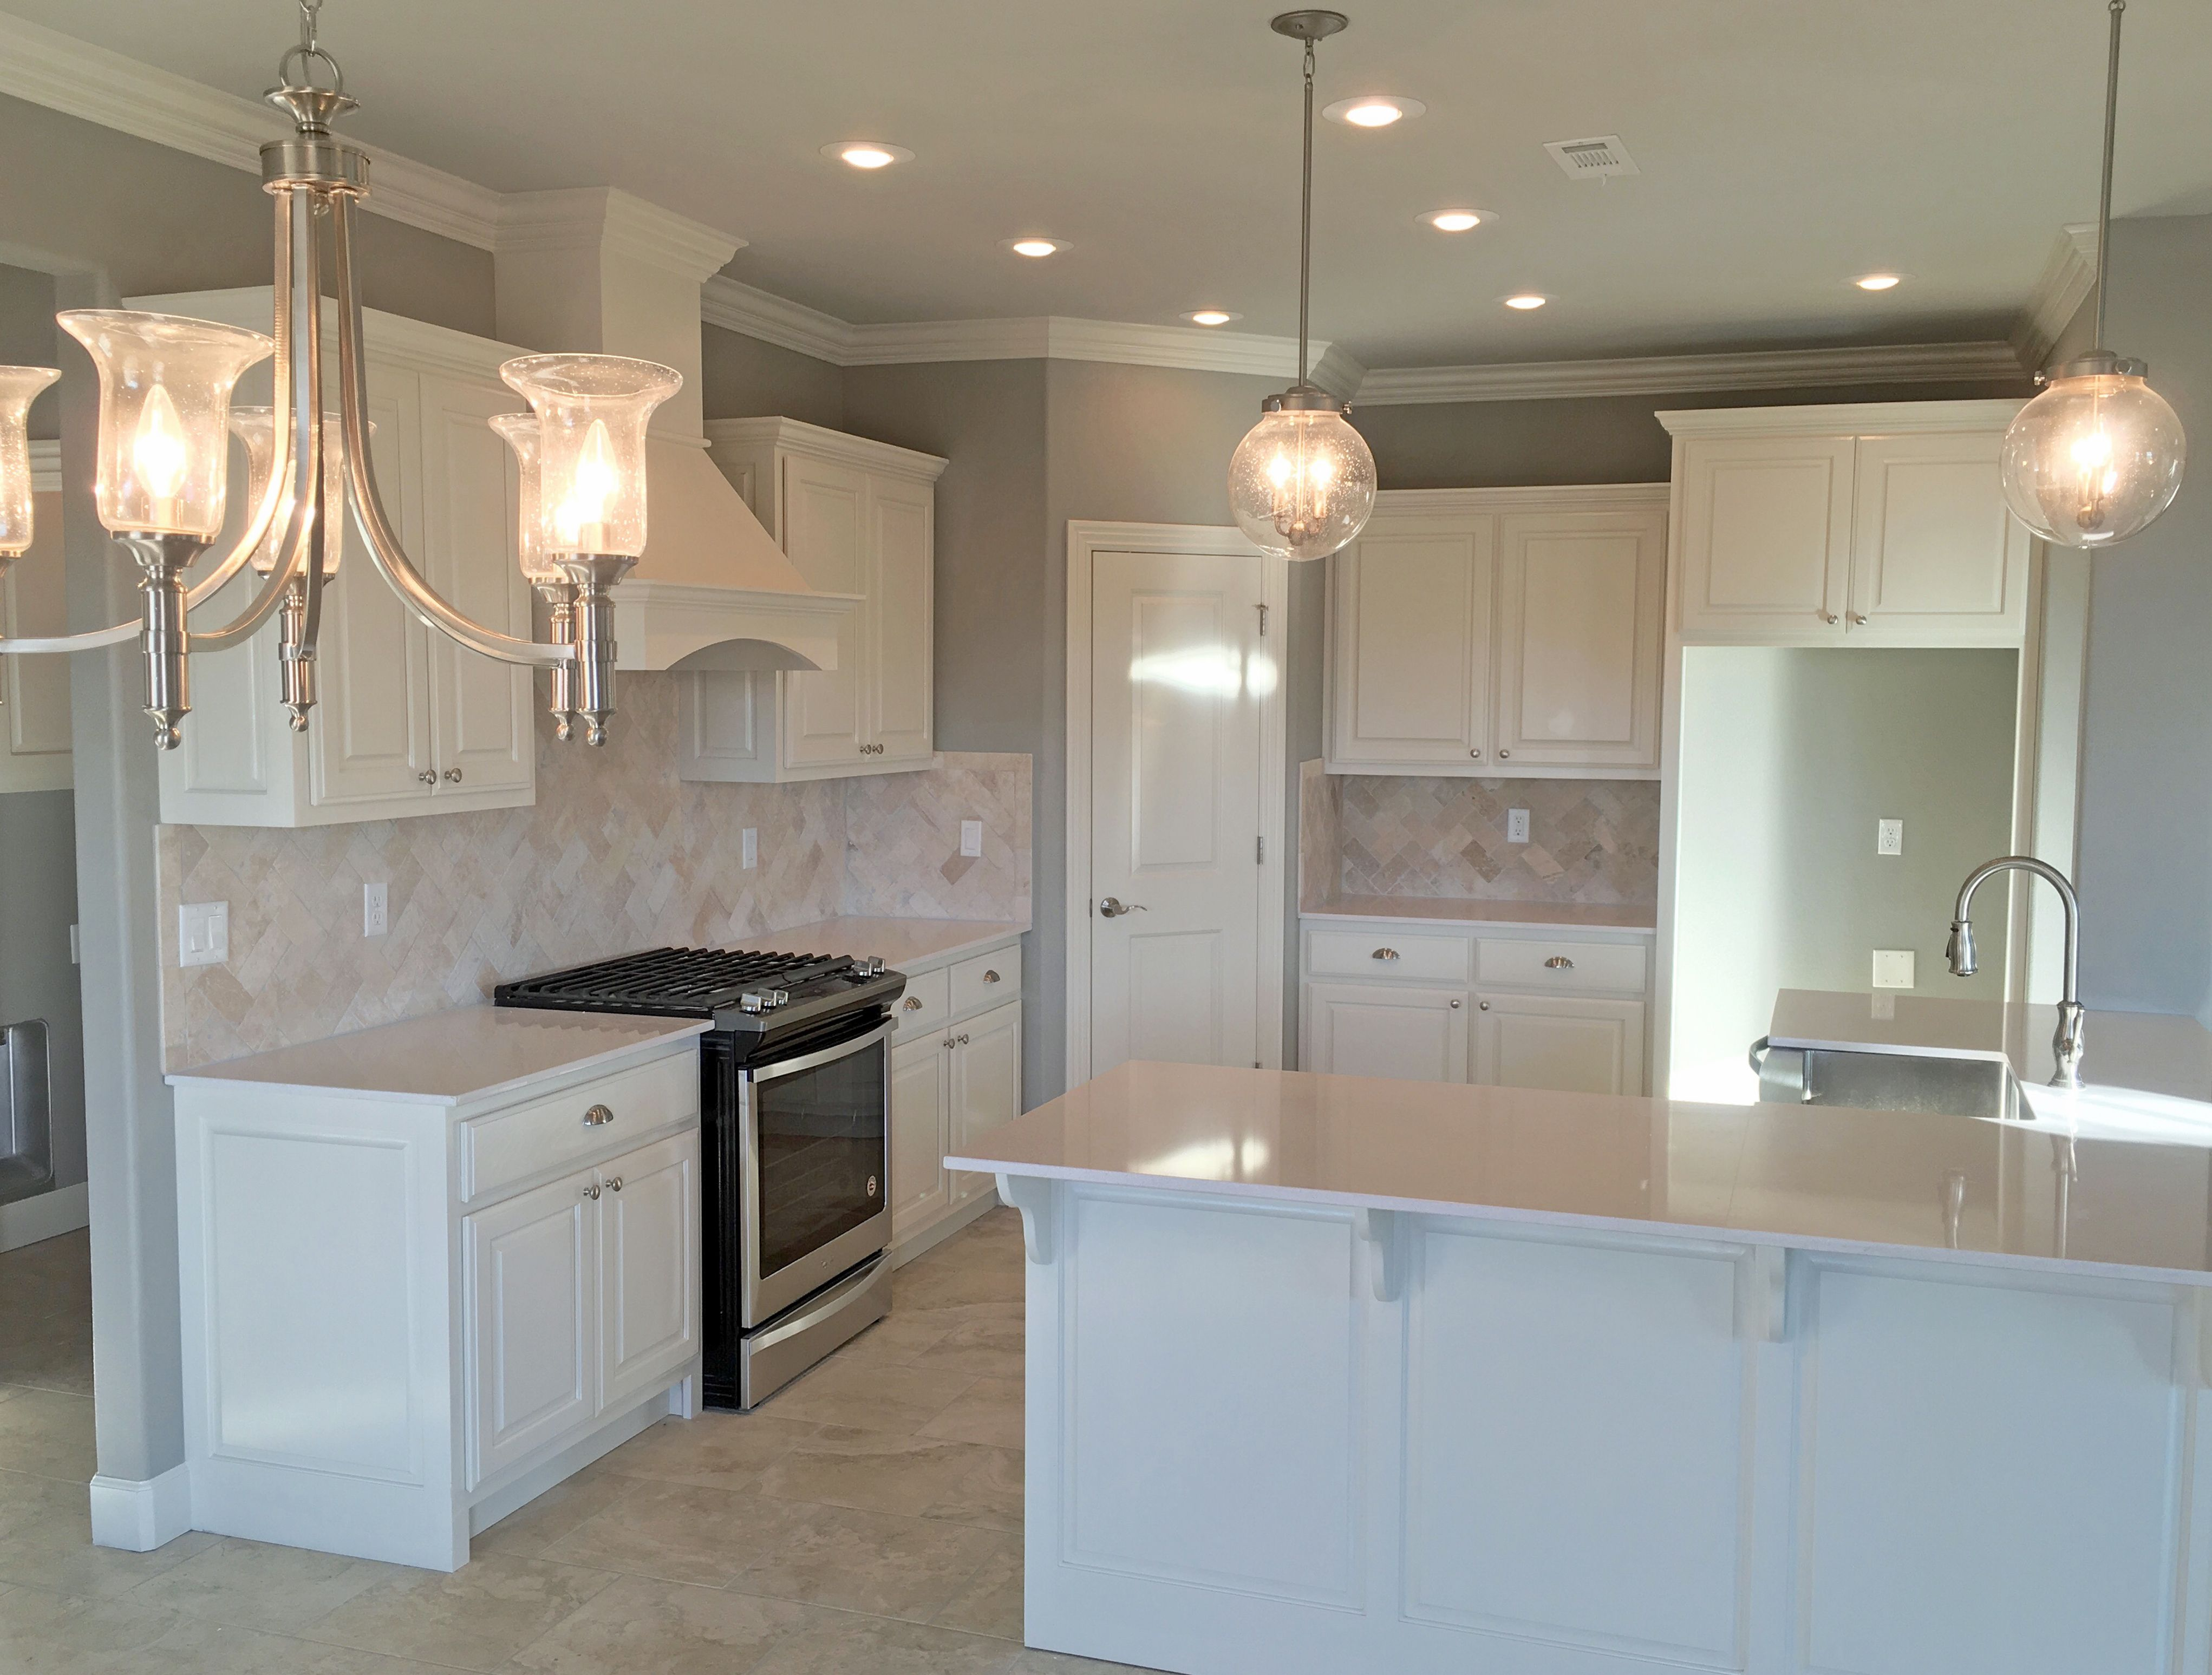 - White Kitchen With Satin Nickel Fixtures, Pendant Lights